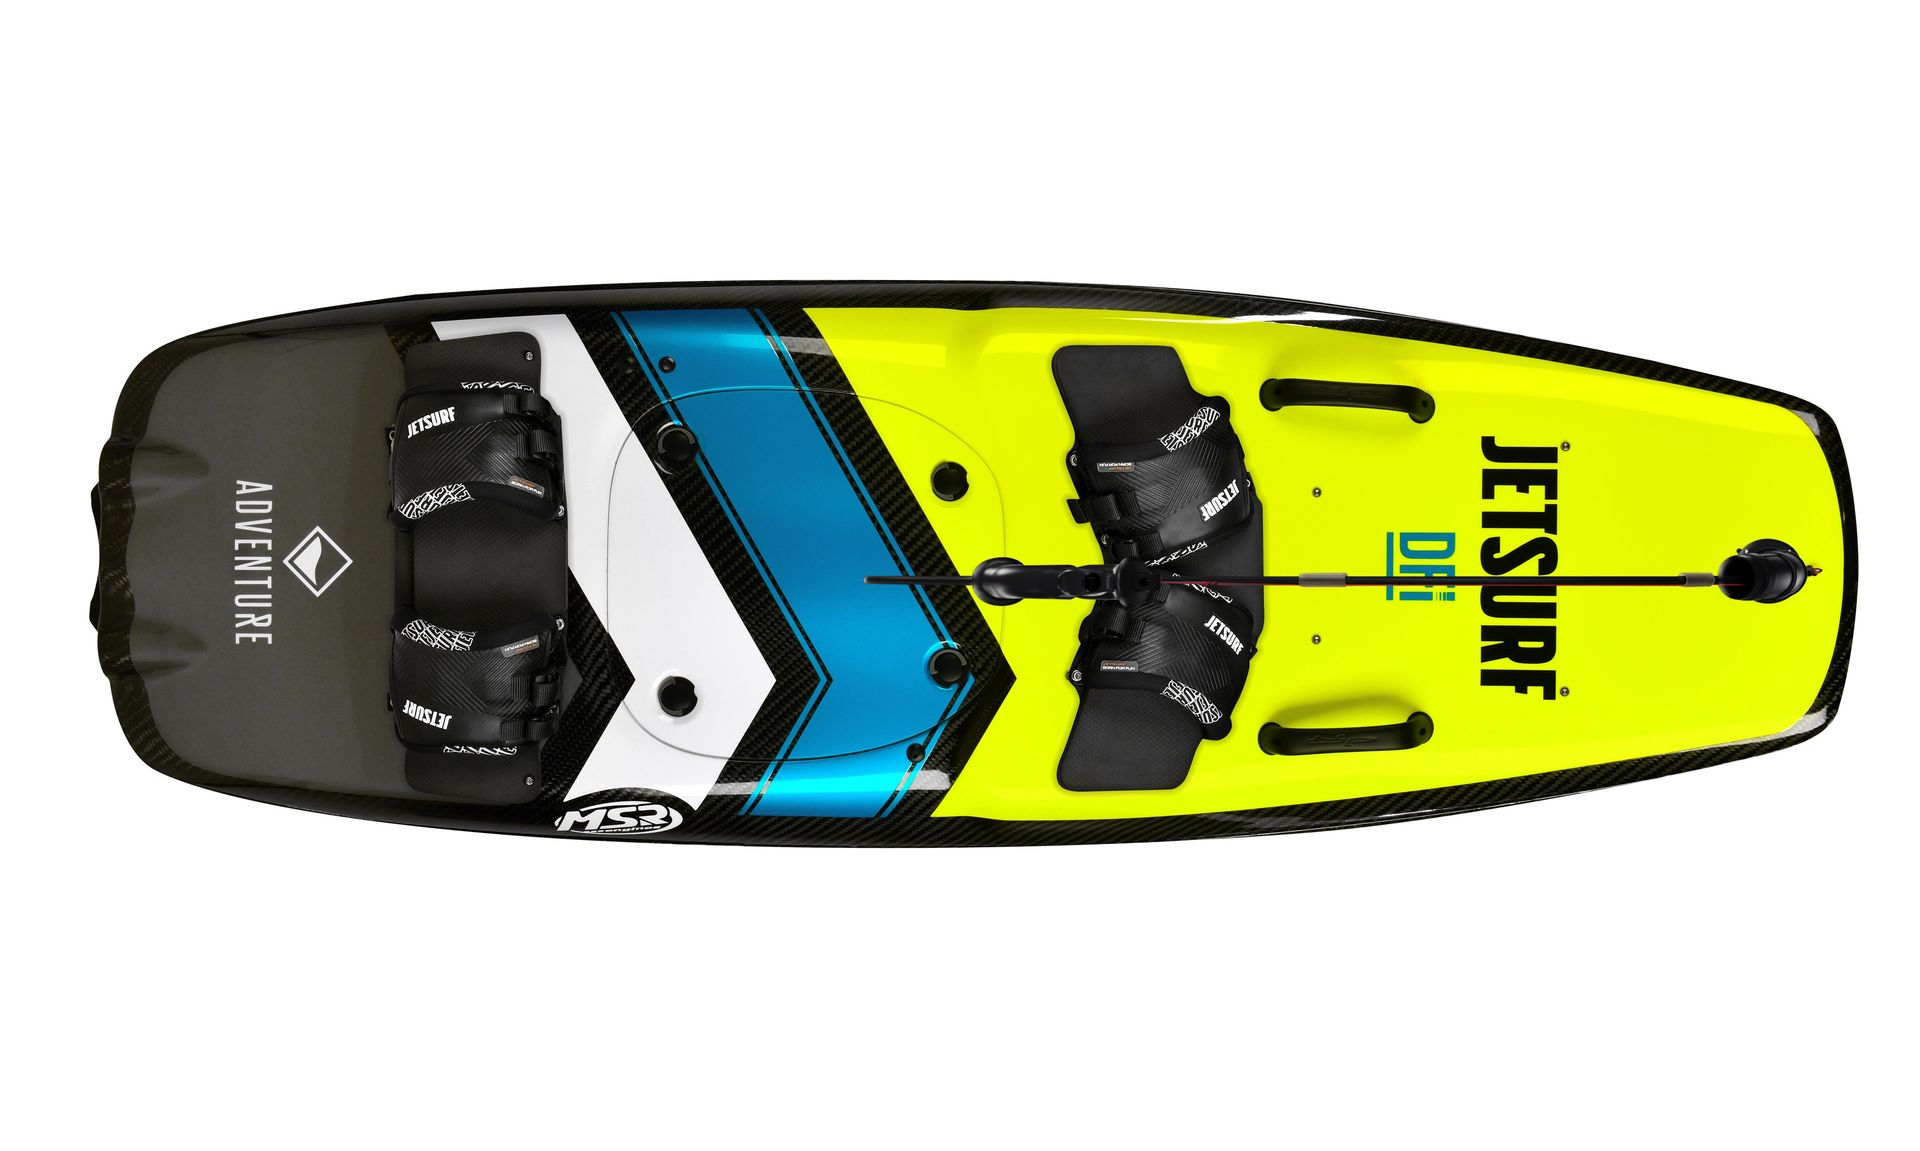 JetSurf Motorised Surfboard Adventure DFI